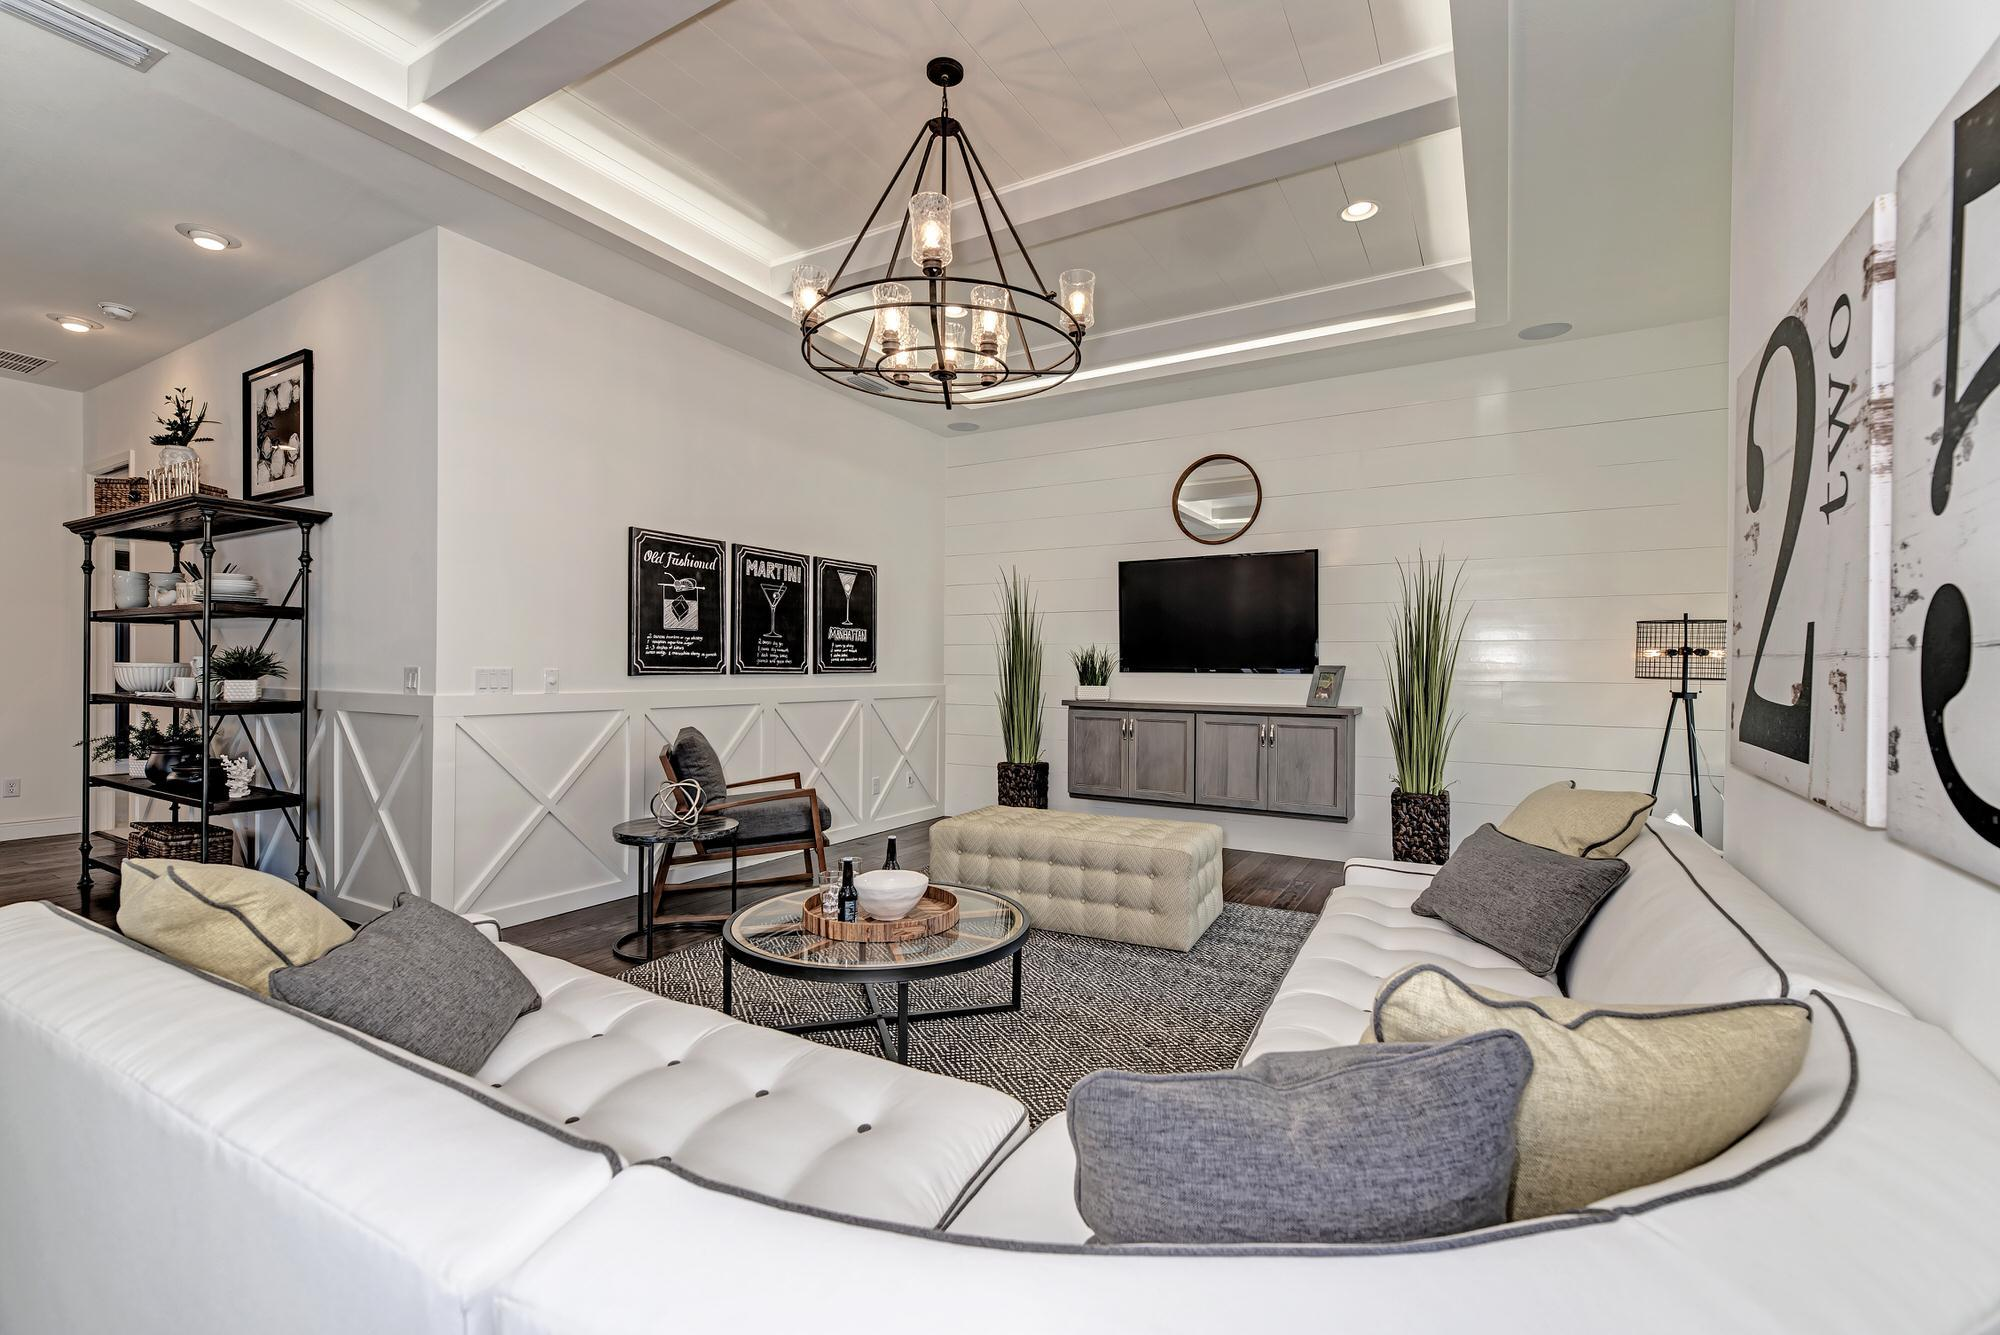 Living Area featured in the Aruba 3 Car Garage By Medallion Home in Sarasota-Bradenton, FL